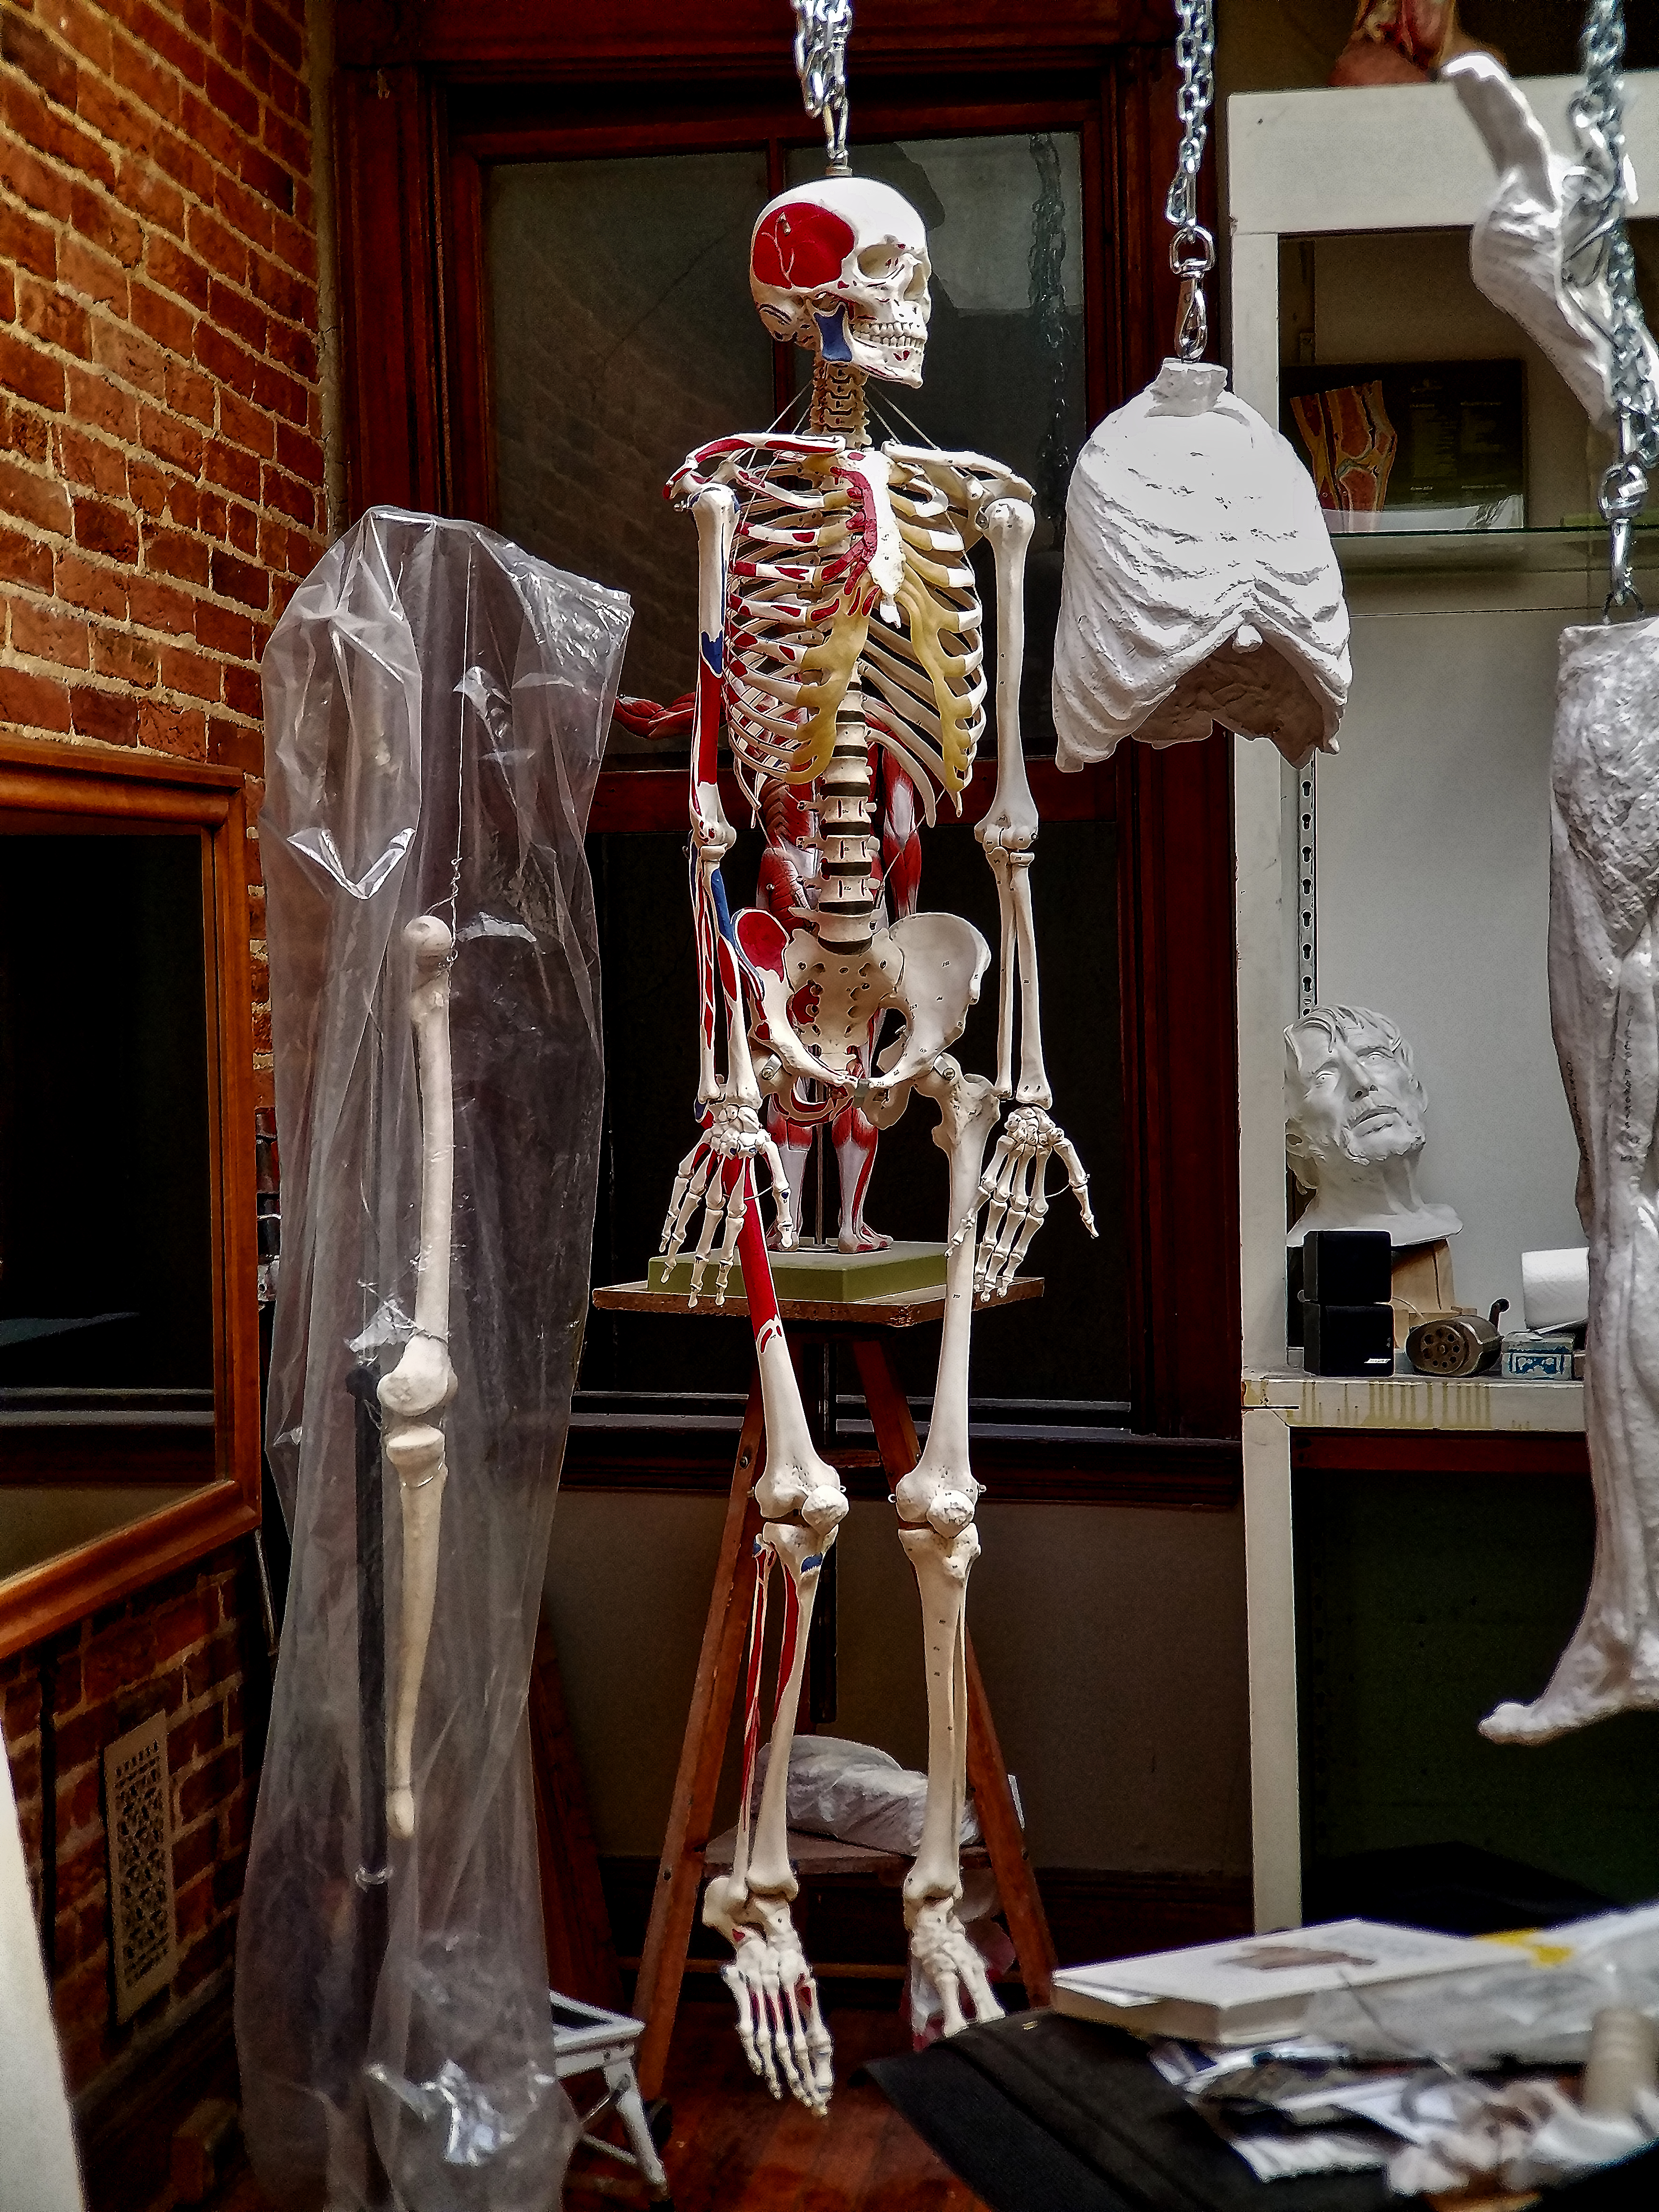 Male Skeleton with Anatomical insertions and origens